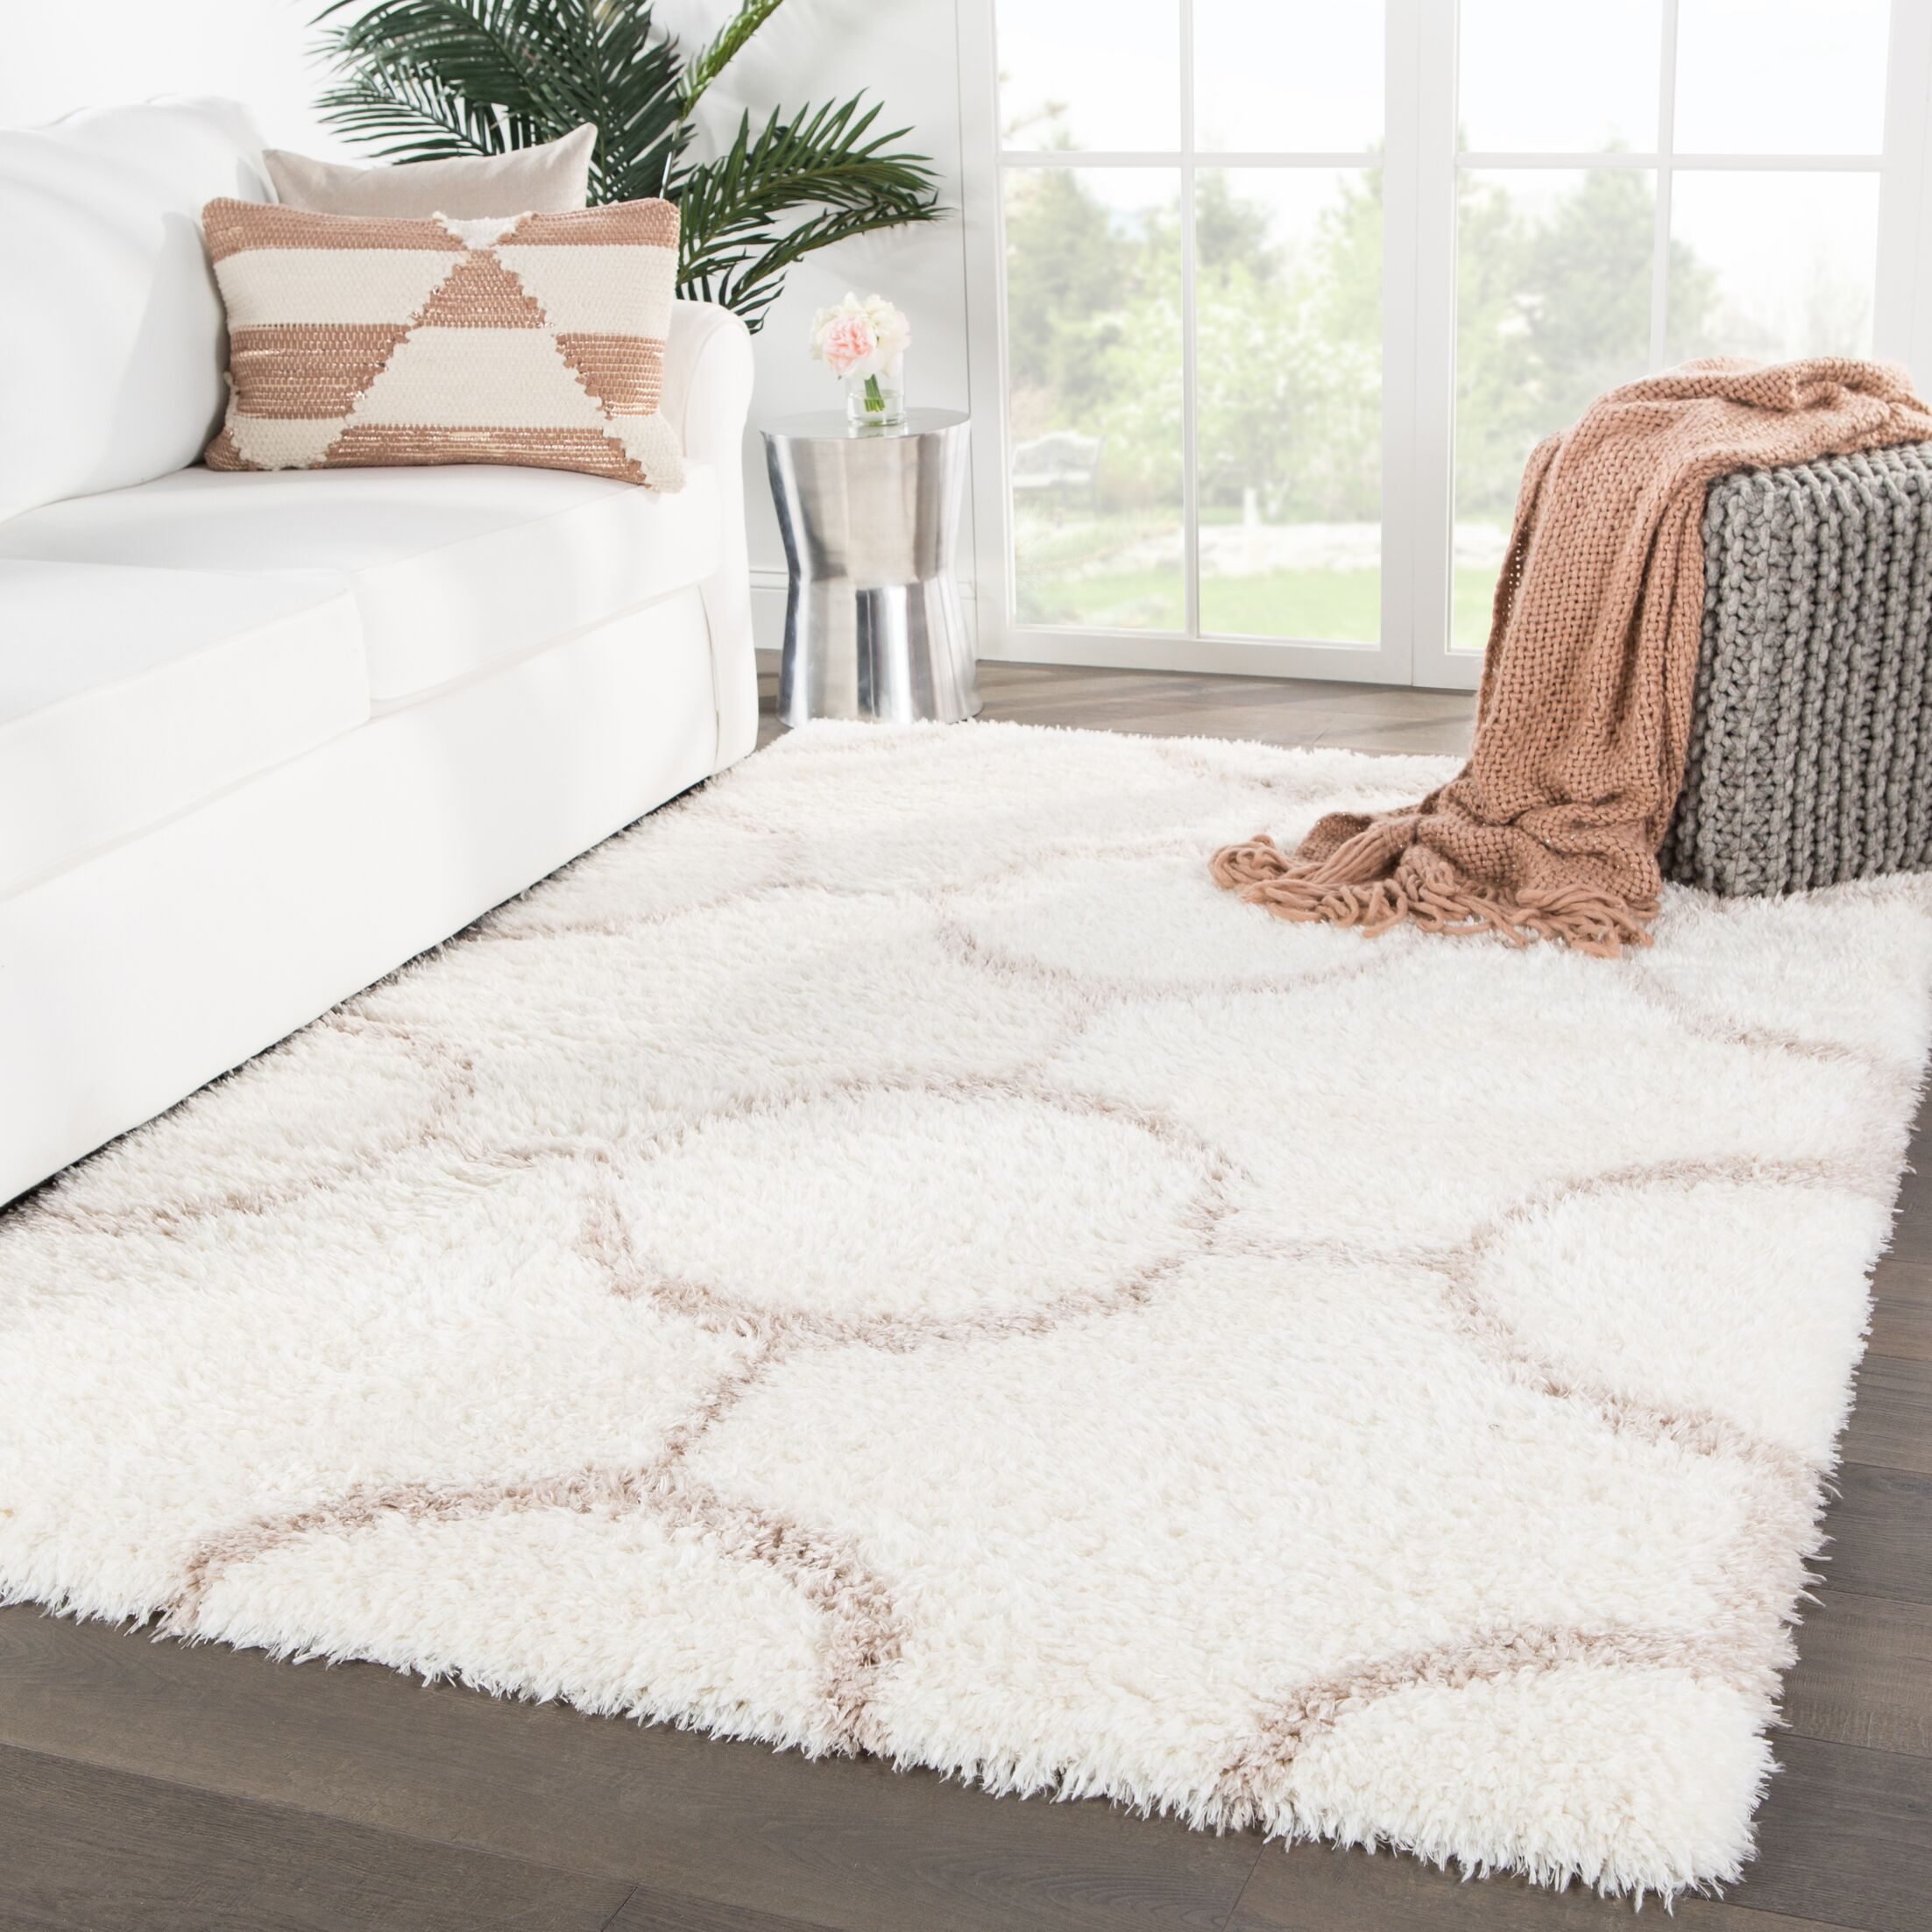 Tabares Geometric Ivory/Brown Area Rug Rug Size: Rectangle 5' x 8'